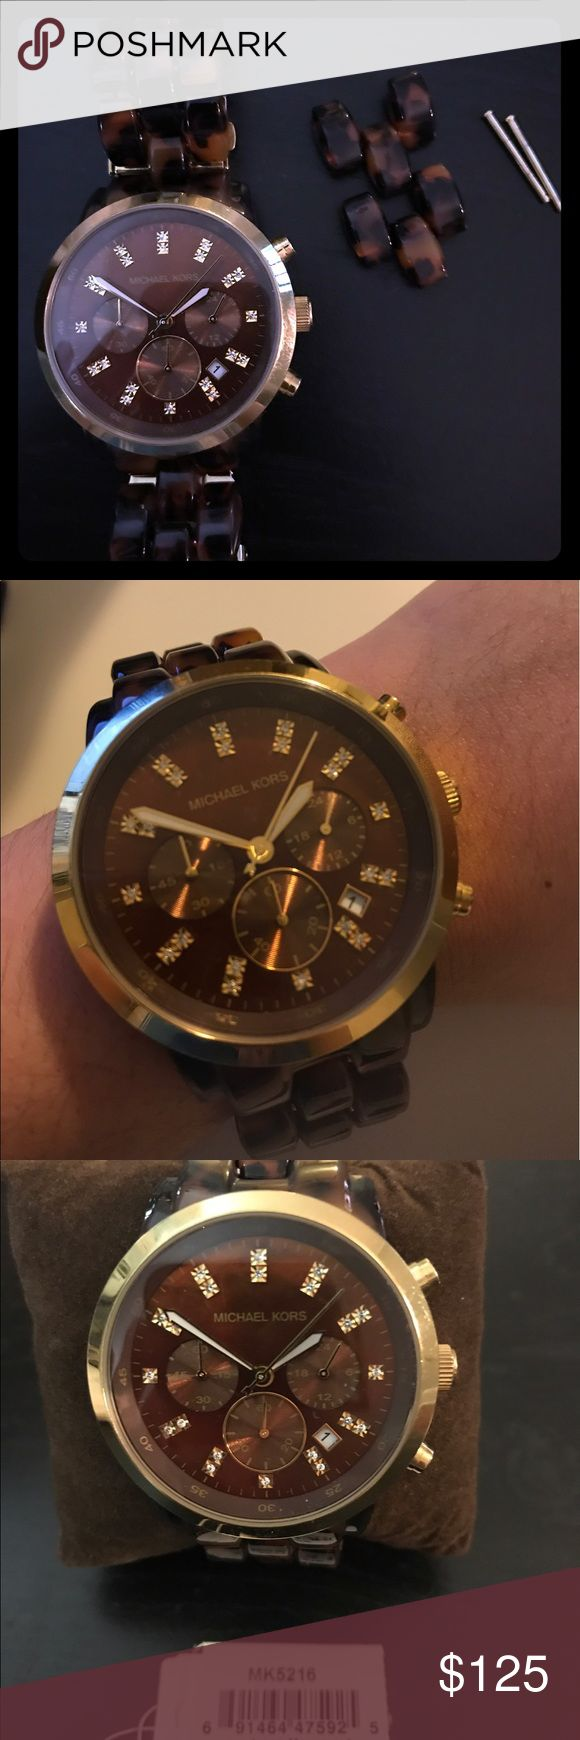 """Michael Kors MK5216 Tortoise Chronograph Watch Lightly worn however, the clasp works but gets jammed occasionally. It still opens and closes. Fits perfectly on a 6"""" wrist and includes two links for adjusting. Requires a battery change. MICHAEL Michael Kors Jewelry"""